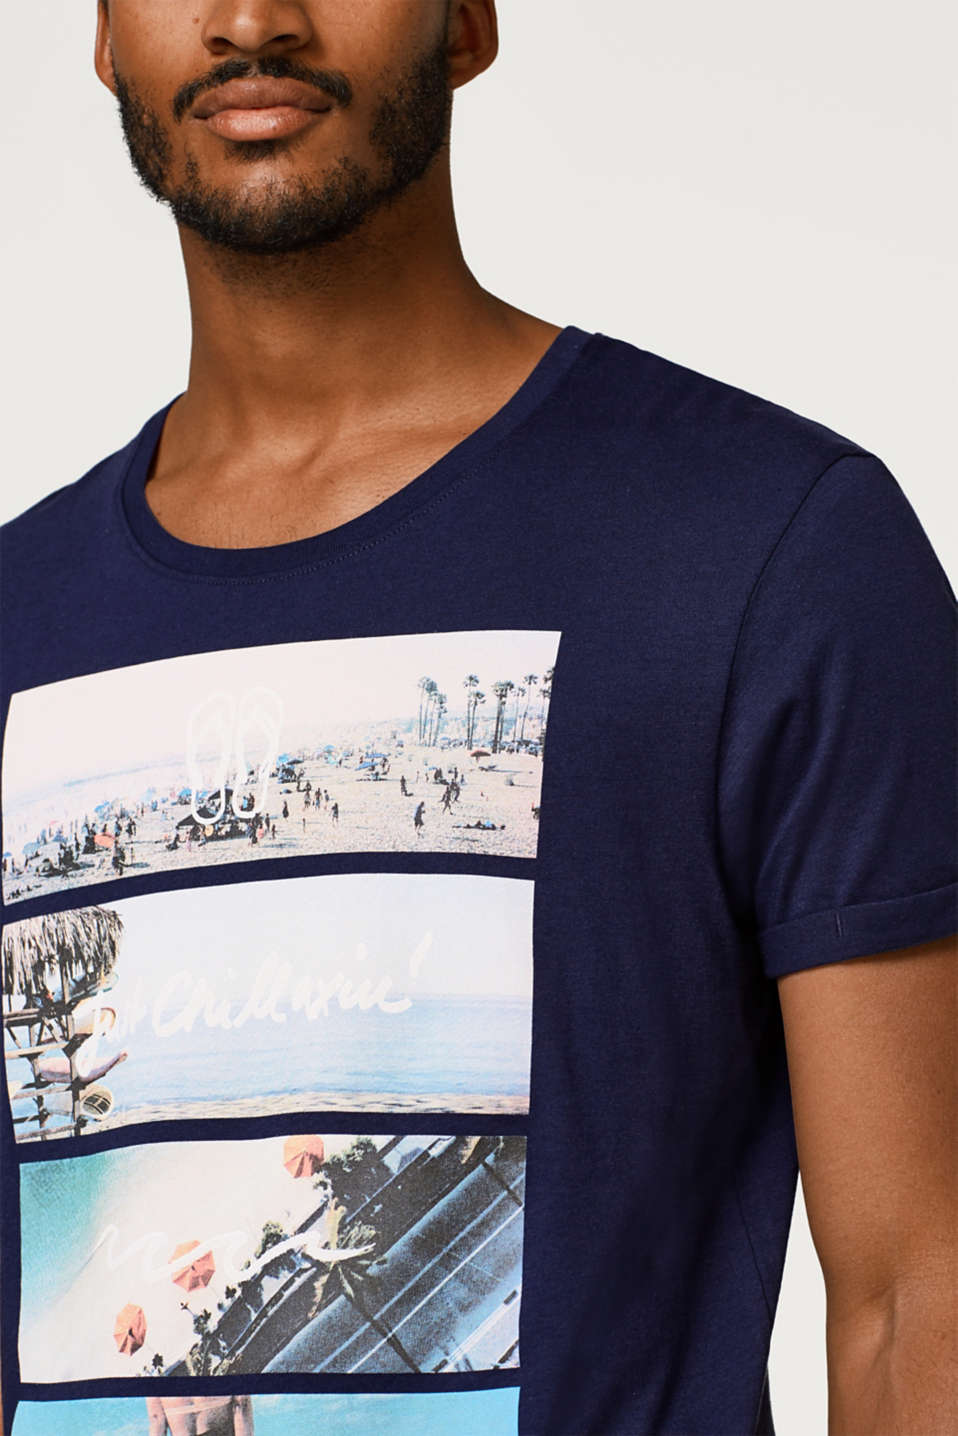 Jersey T-shirt with a photo print, in cotton